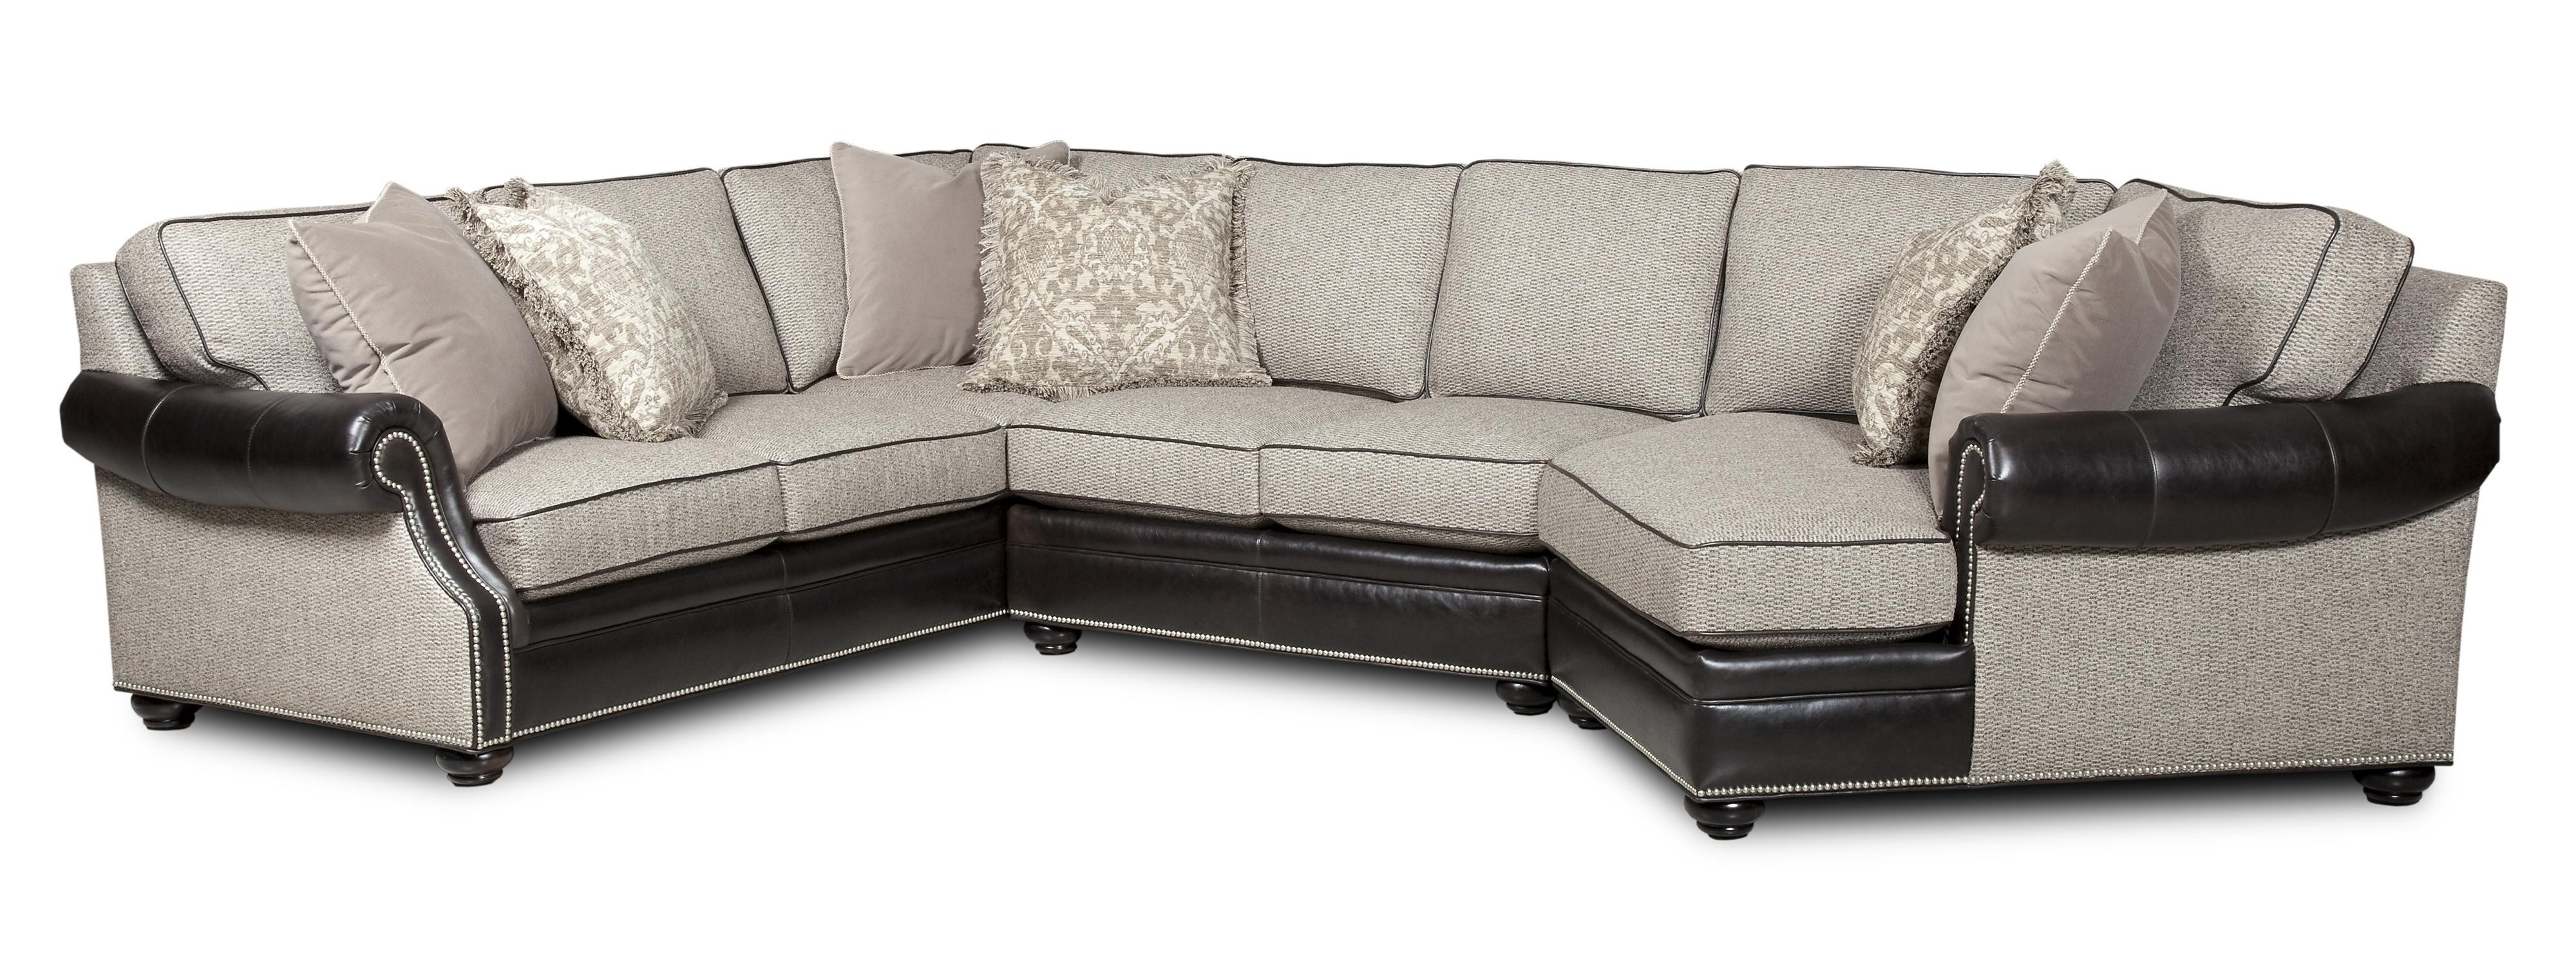 Furniture : Ethan Allen Used Furniture Craigslist Elegant Tr E2 Regarding Most Current Kelowna Sectional Sofas (View 6 of 15)